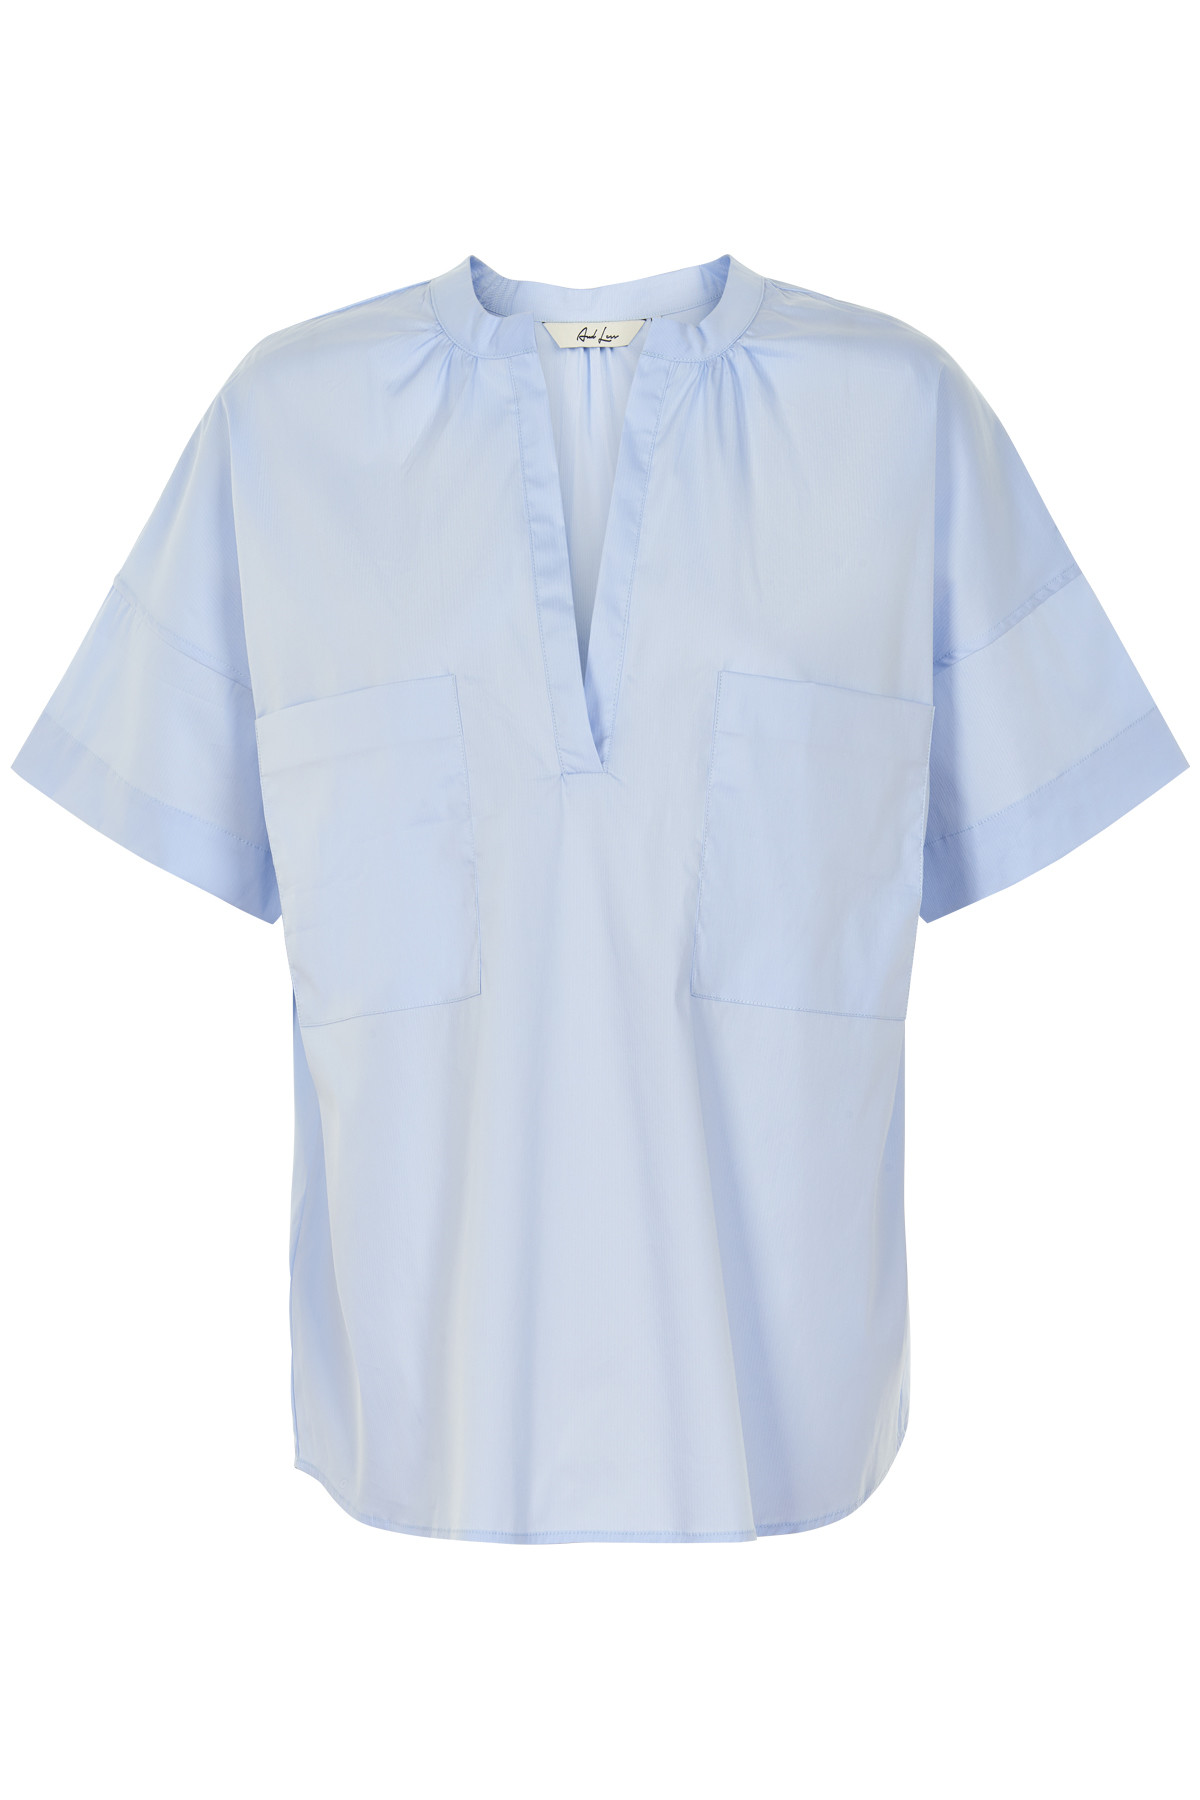 Image of   AND LESS ORIBELLA BLUSE 5219009 (Kentucky Blue, 40)